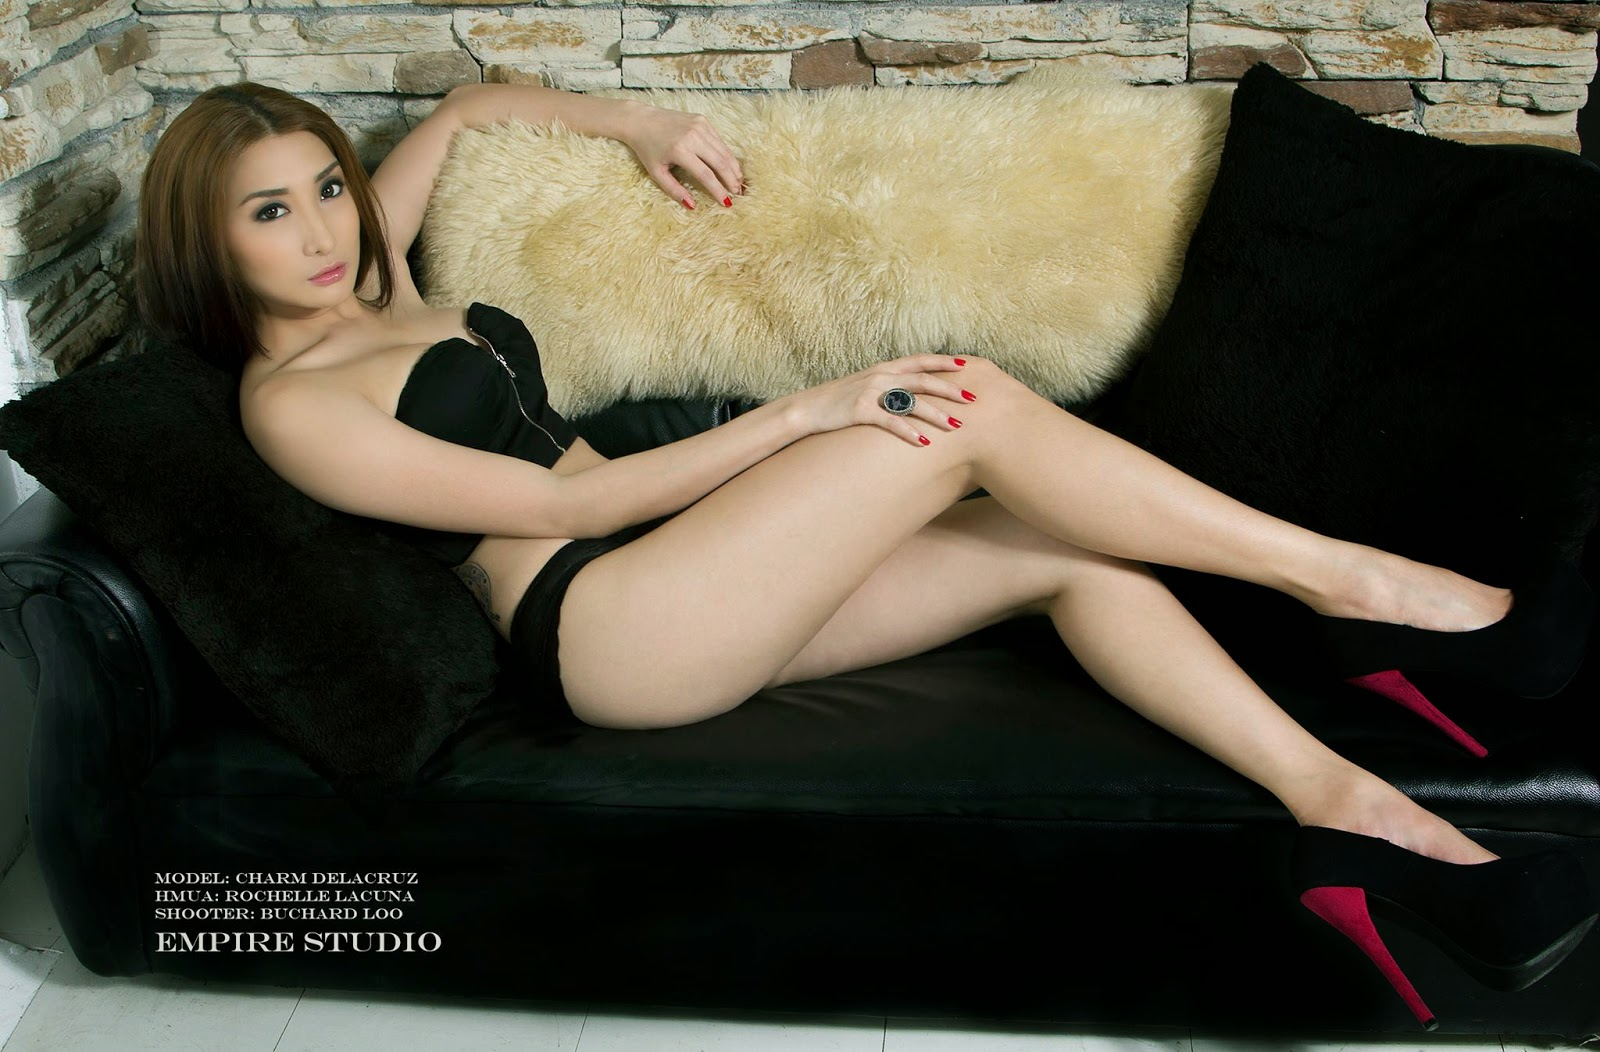 charm dela cruz sexy nude photos 01